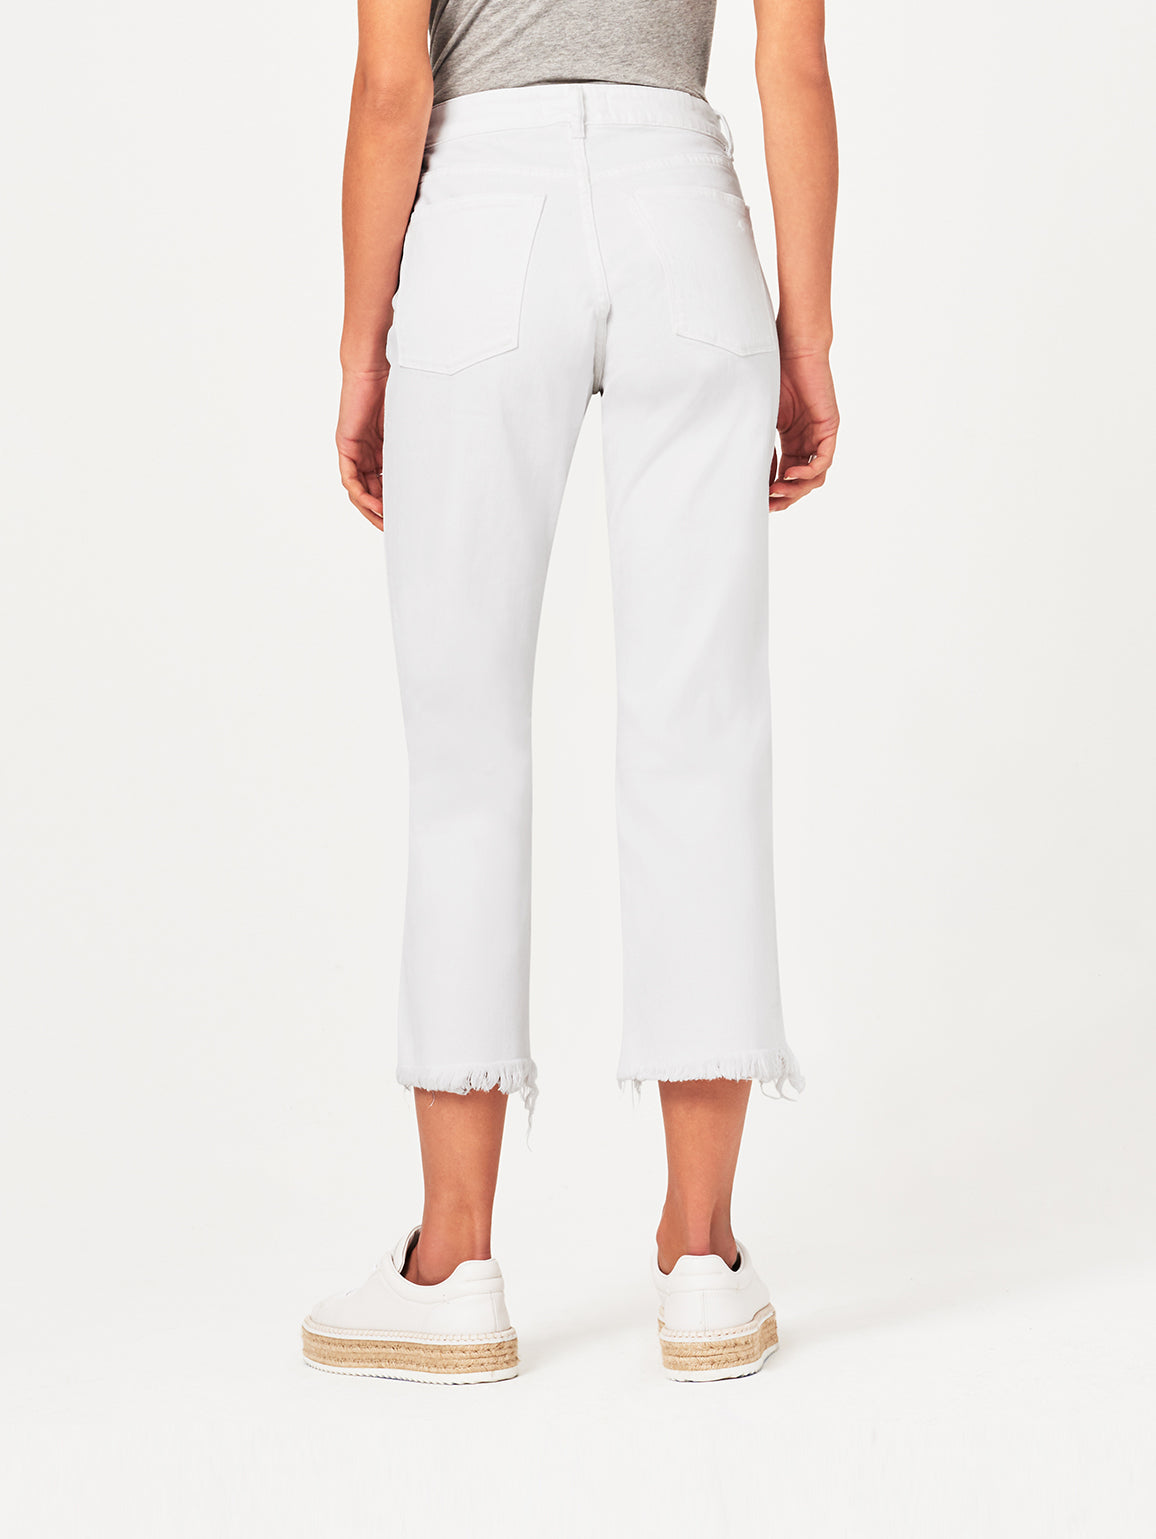 Patti High Rise Straight | Donovan DL 1961 Denim